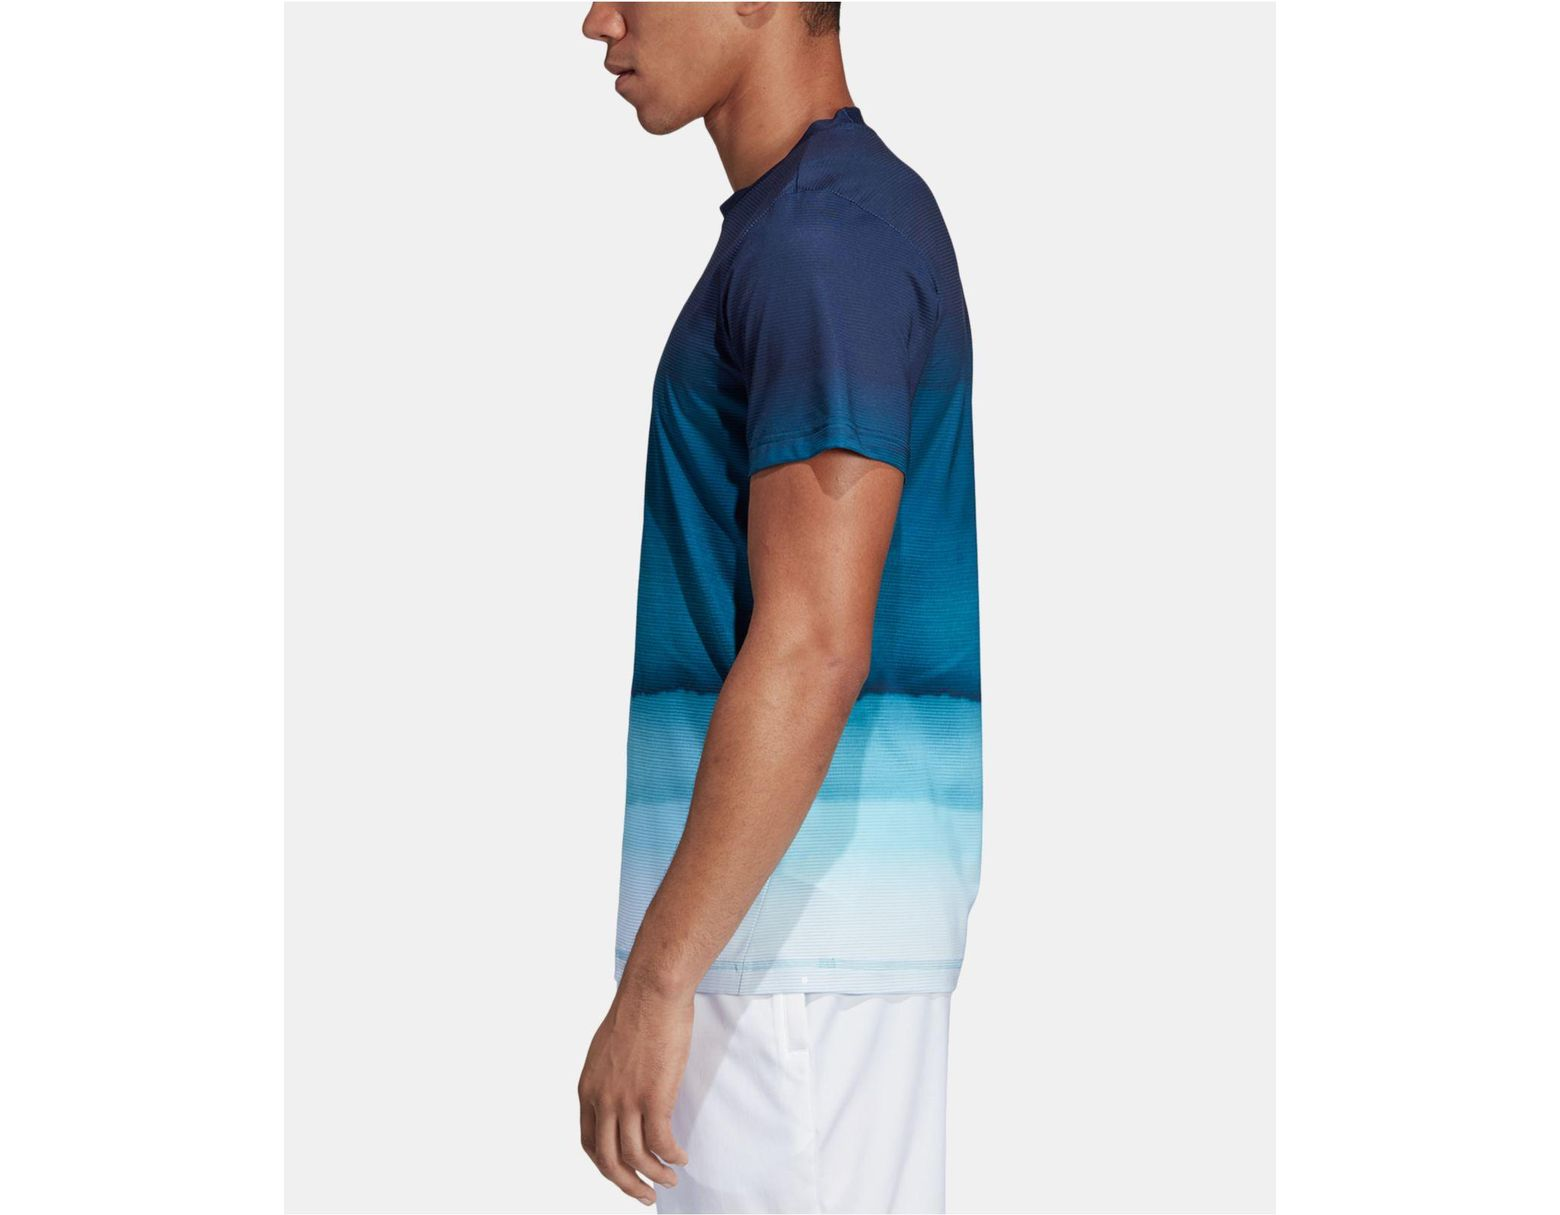 645a1f452 adidas Parley Ombré Tennis T-shirt in Blue for Men - Lyst